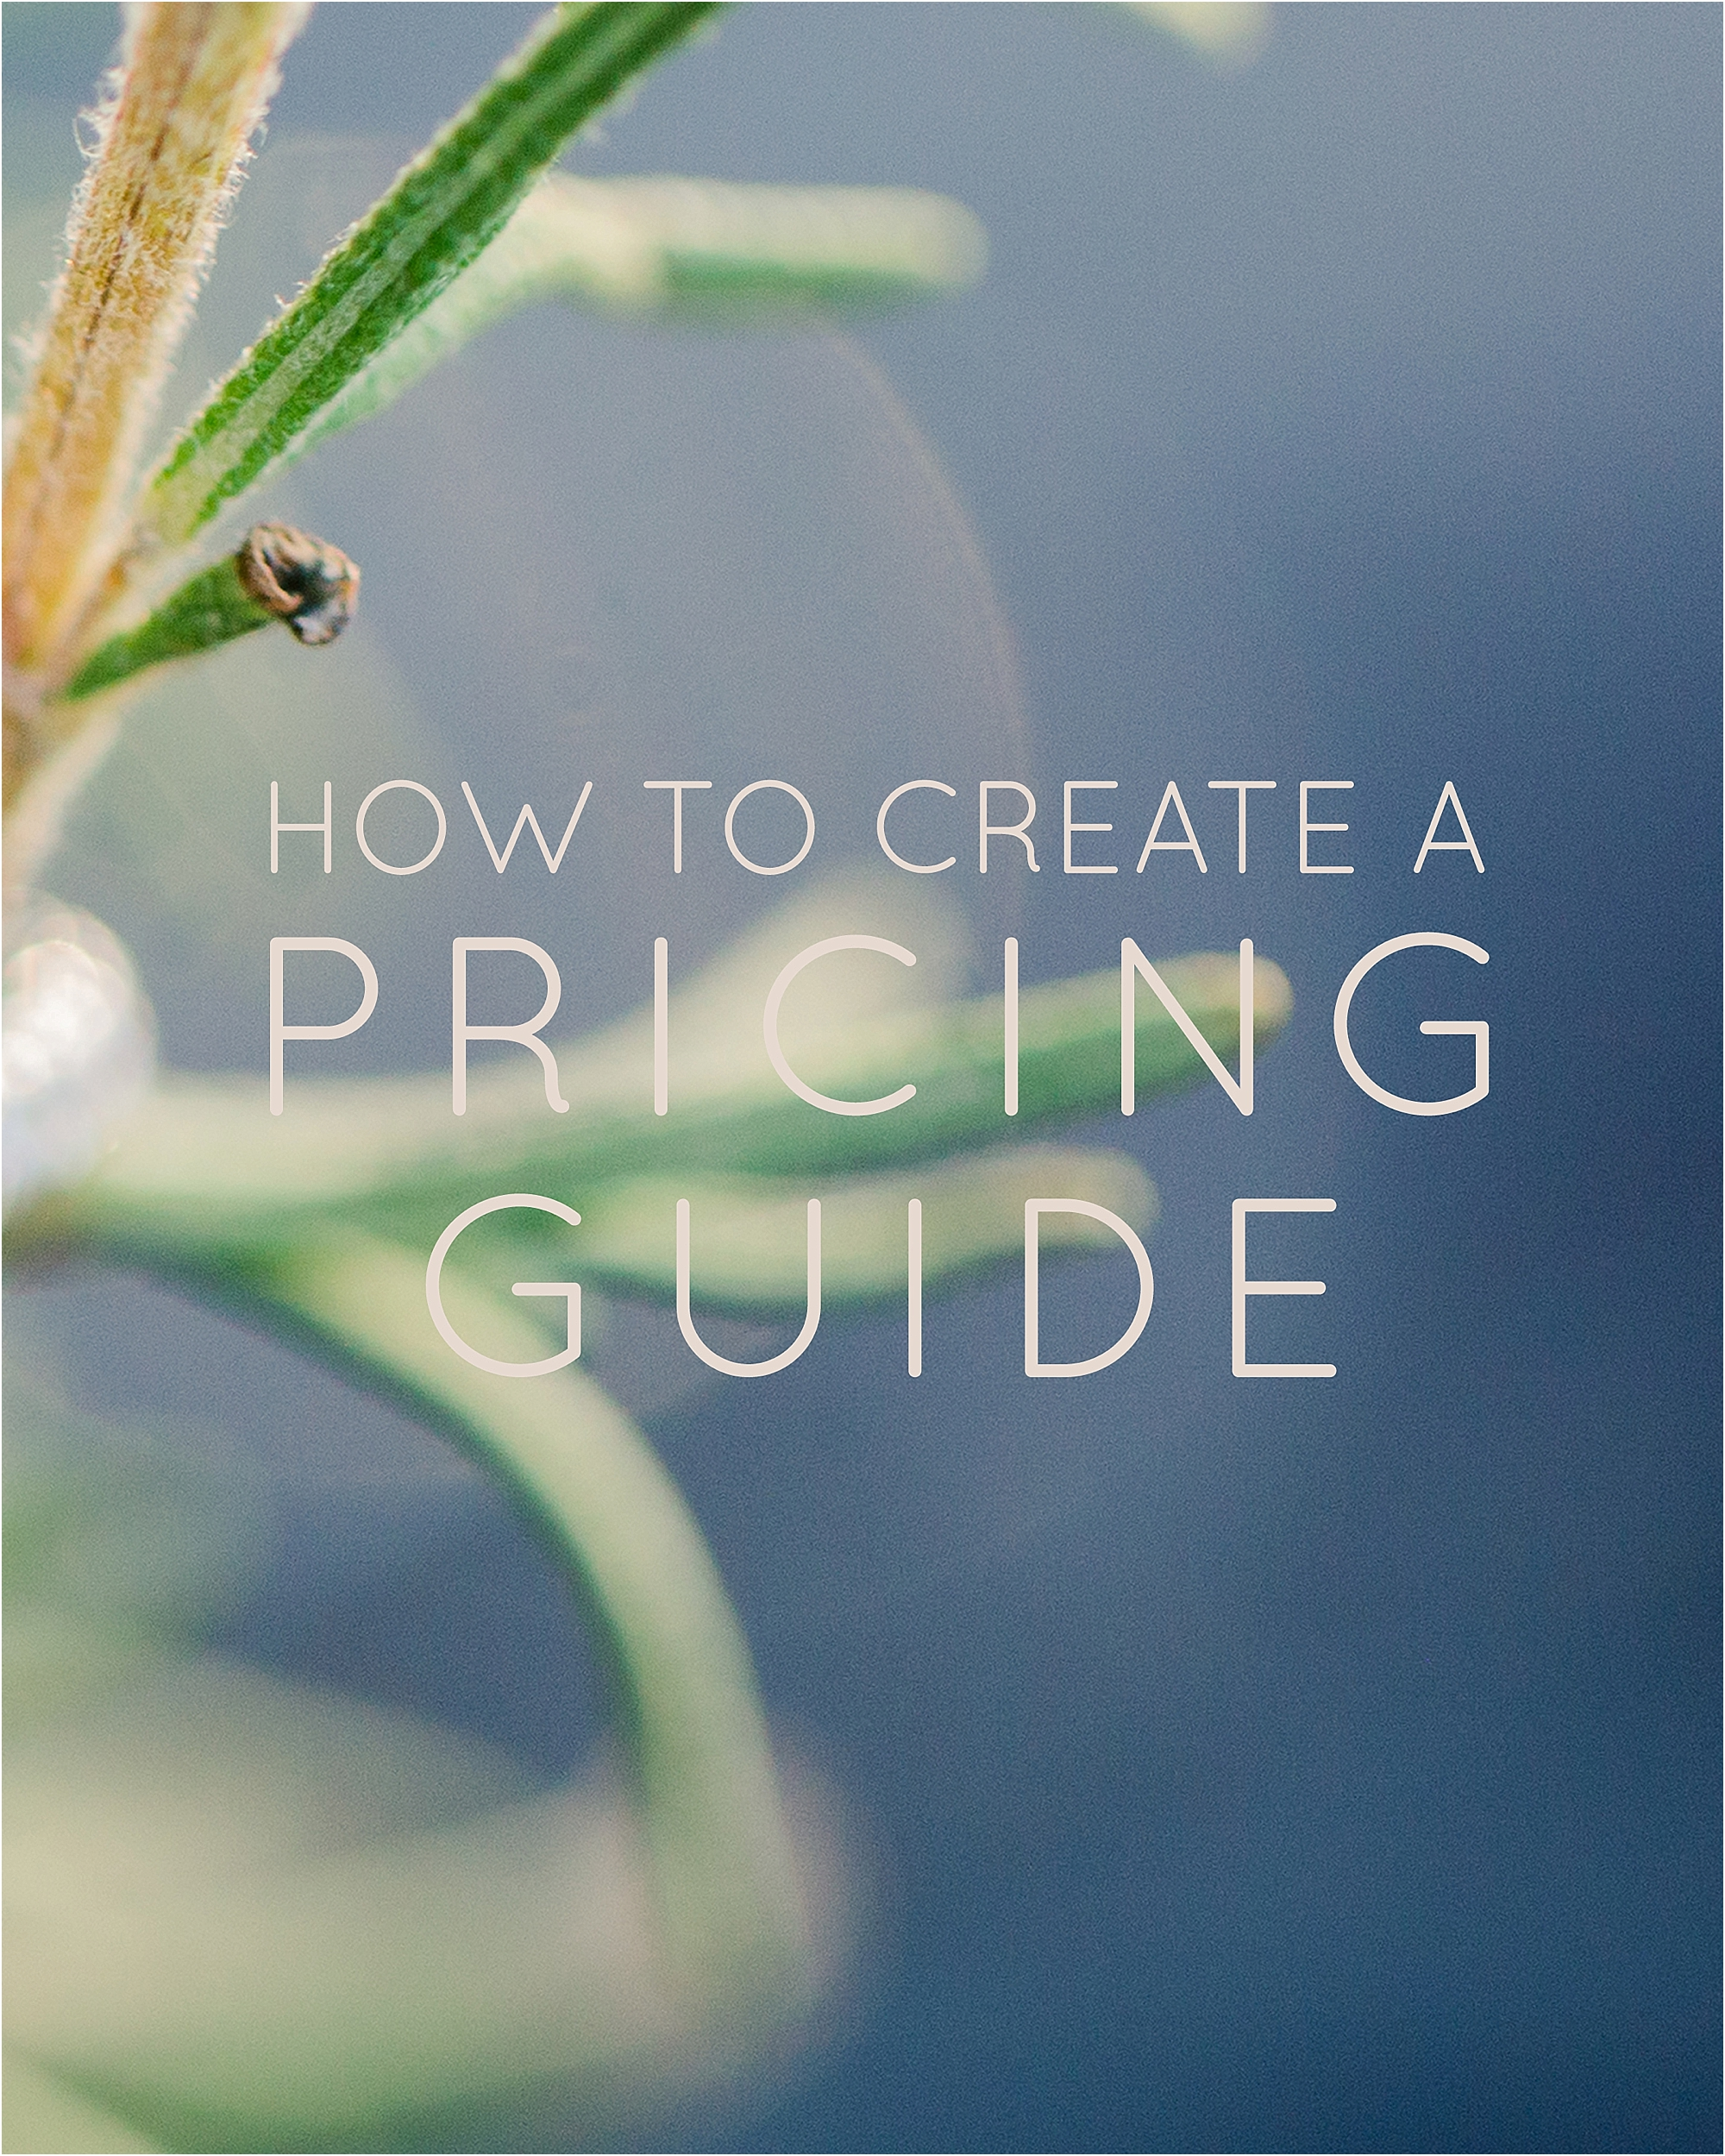 How To Create a Pricing Guide - The Jordan Brittley Blog